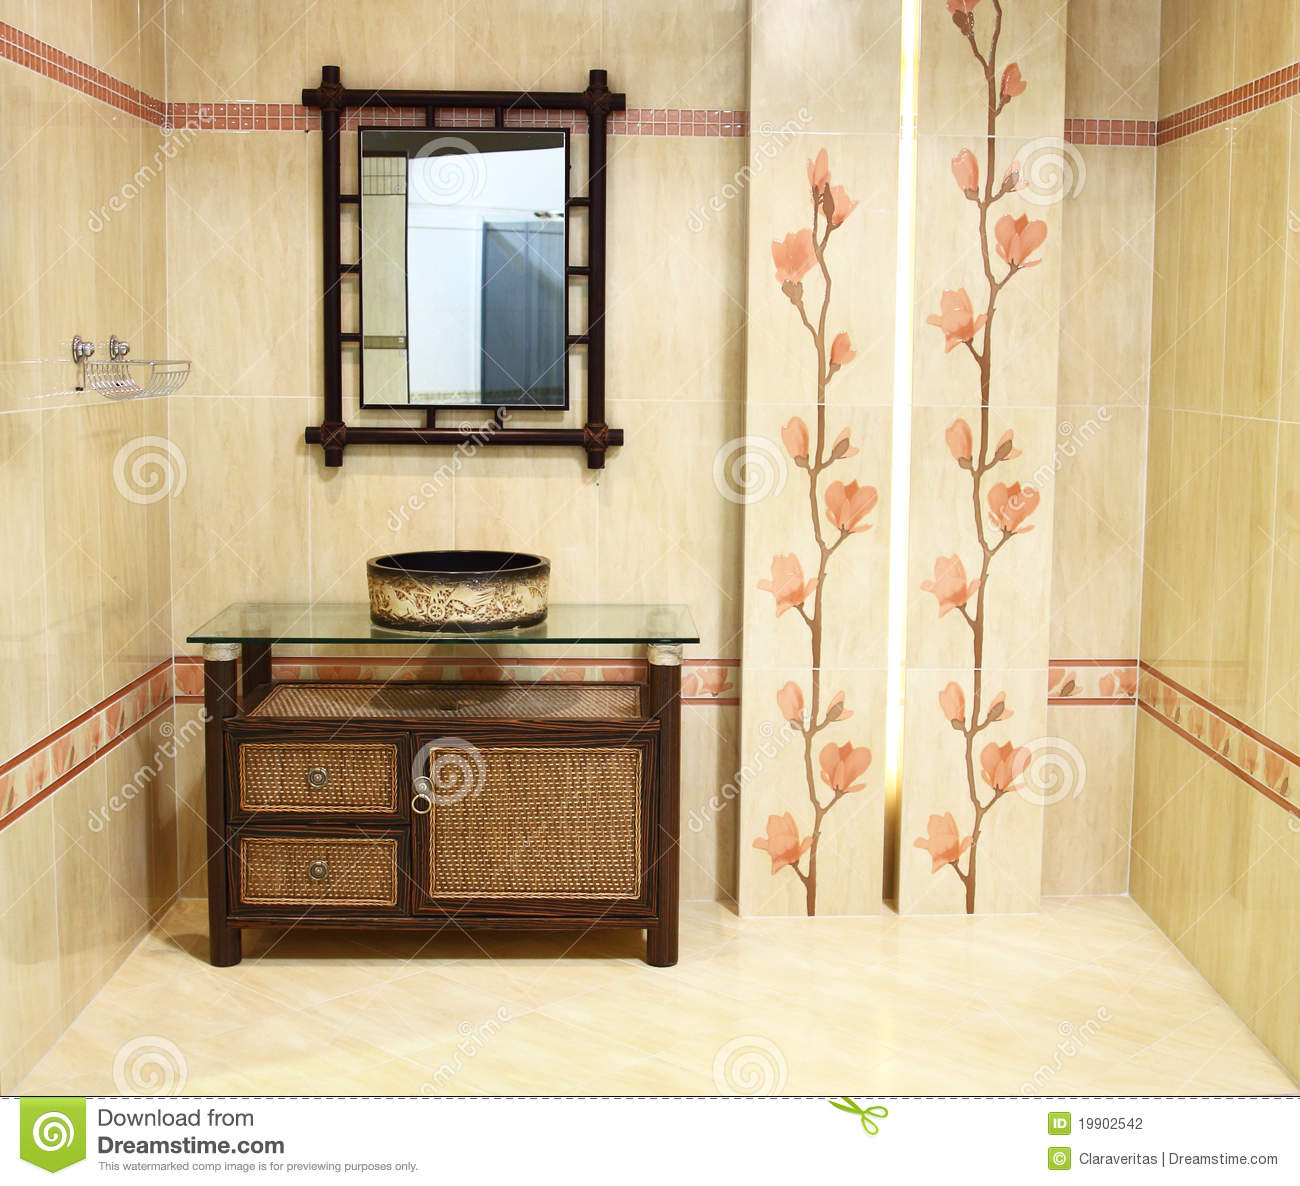 Interior of bathroom iii stock photography image 19902542 for Bathroom interior images